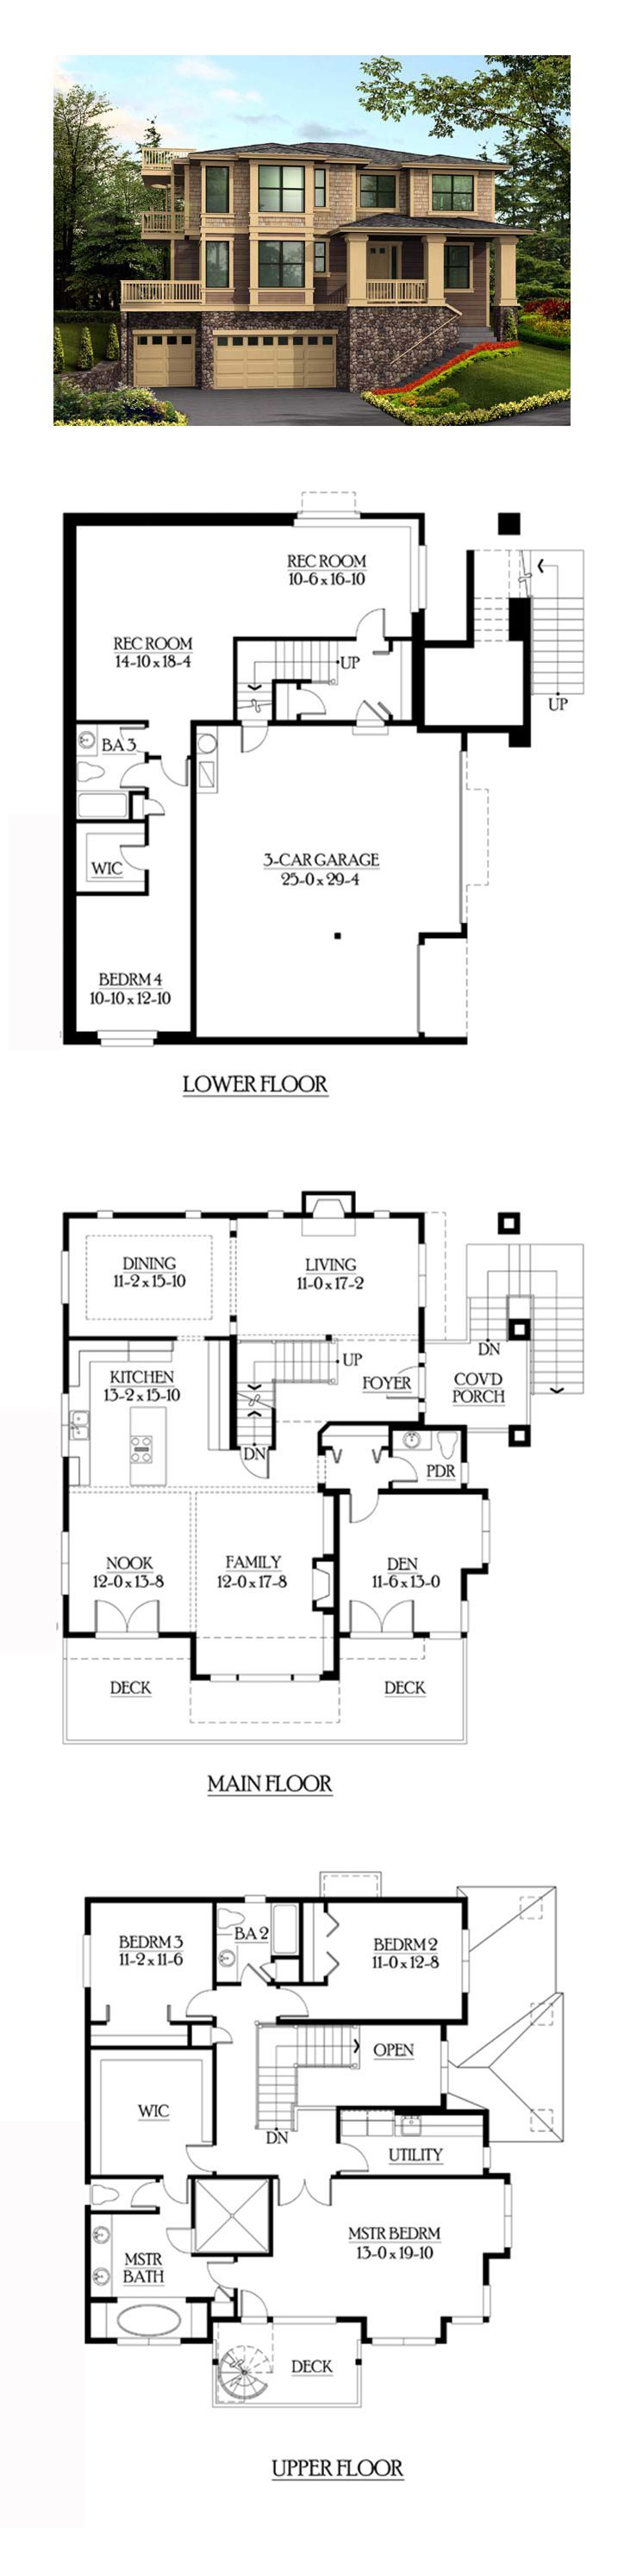 Photo of Finished Basement COOL House Plan ID: chp-39324 | Total Living Area: 3946 sq. ft…